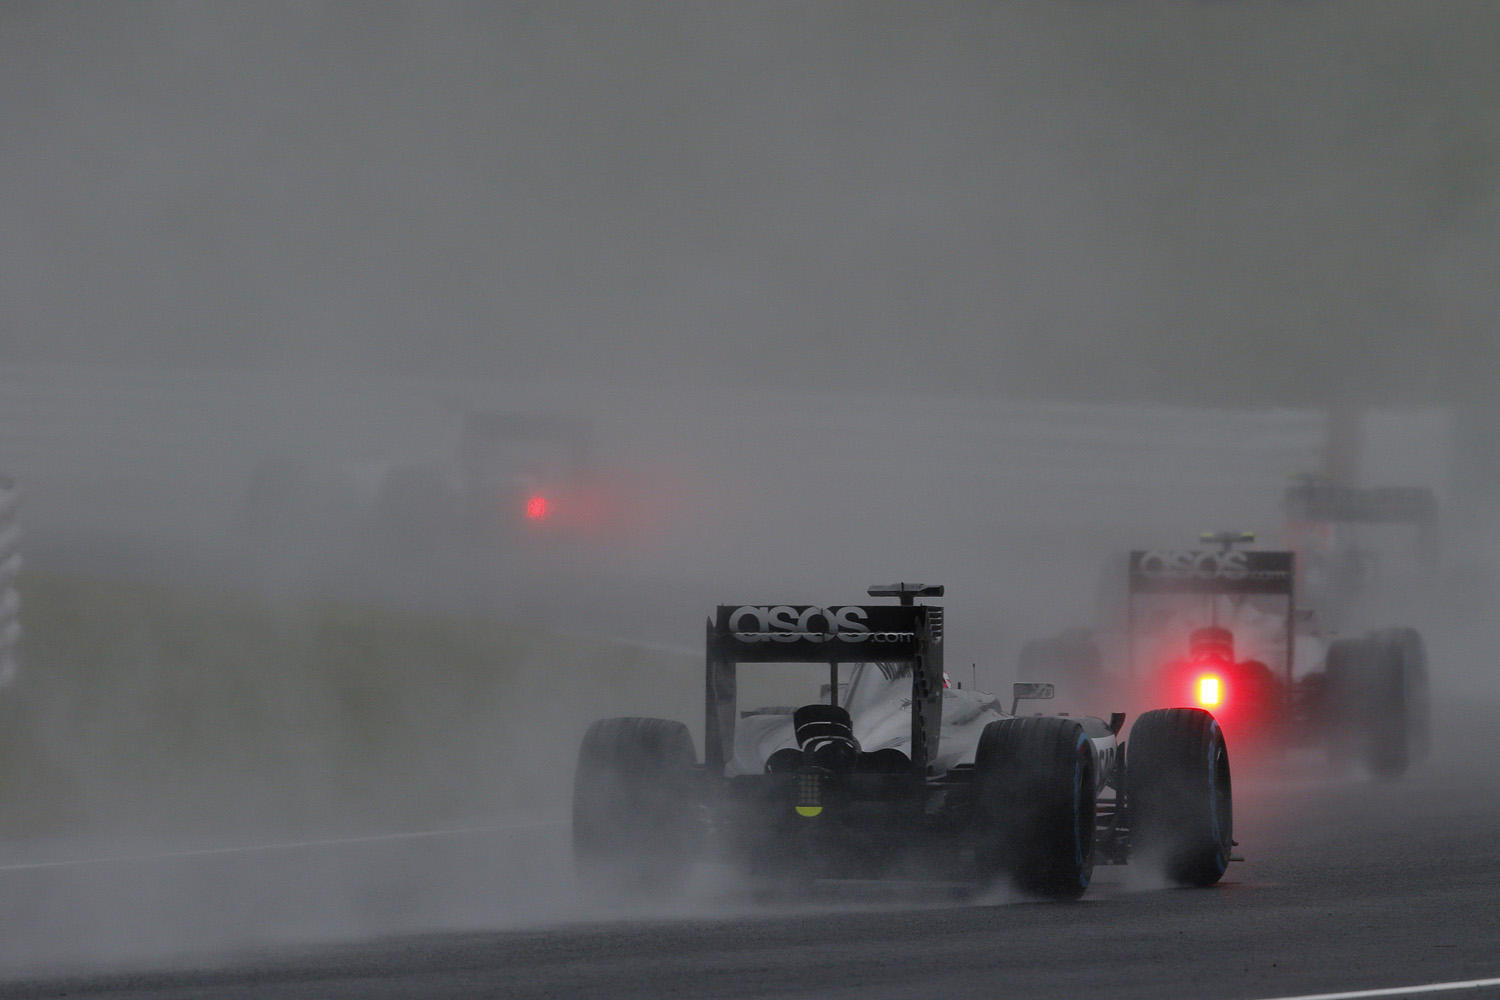 Kevin Magnussen and Jenson Button on track.